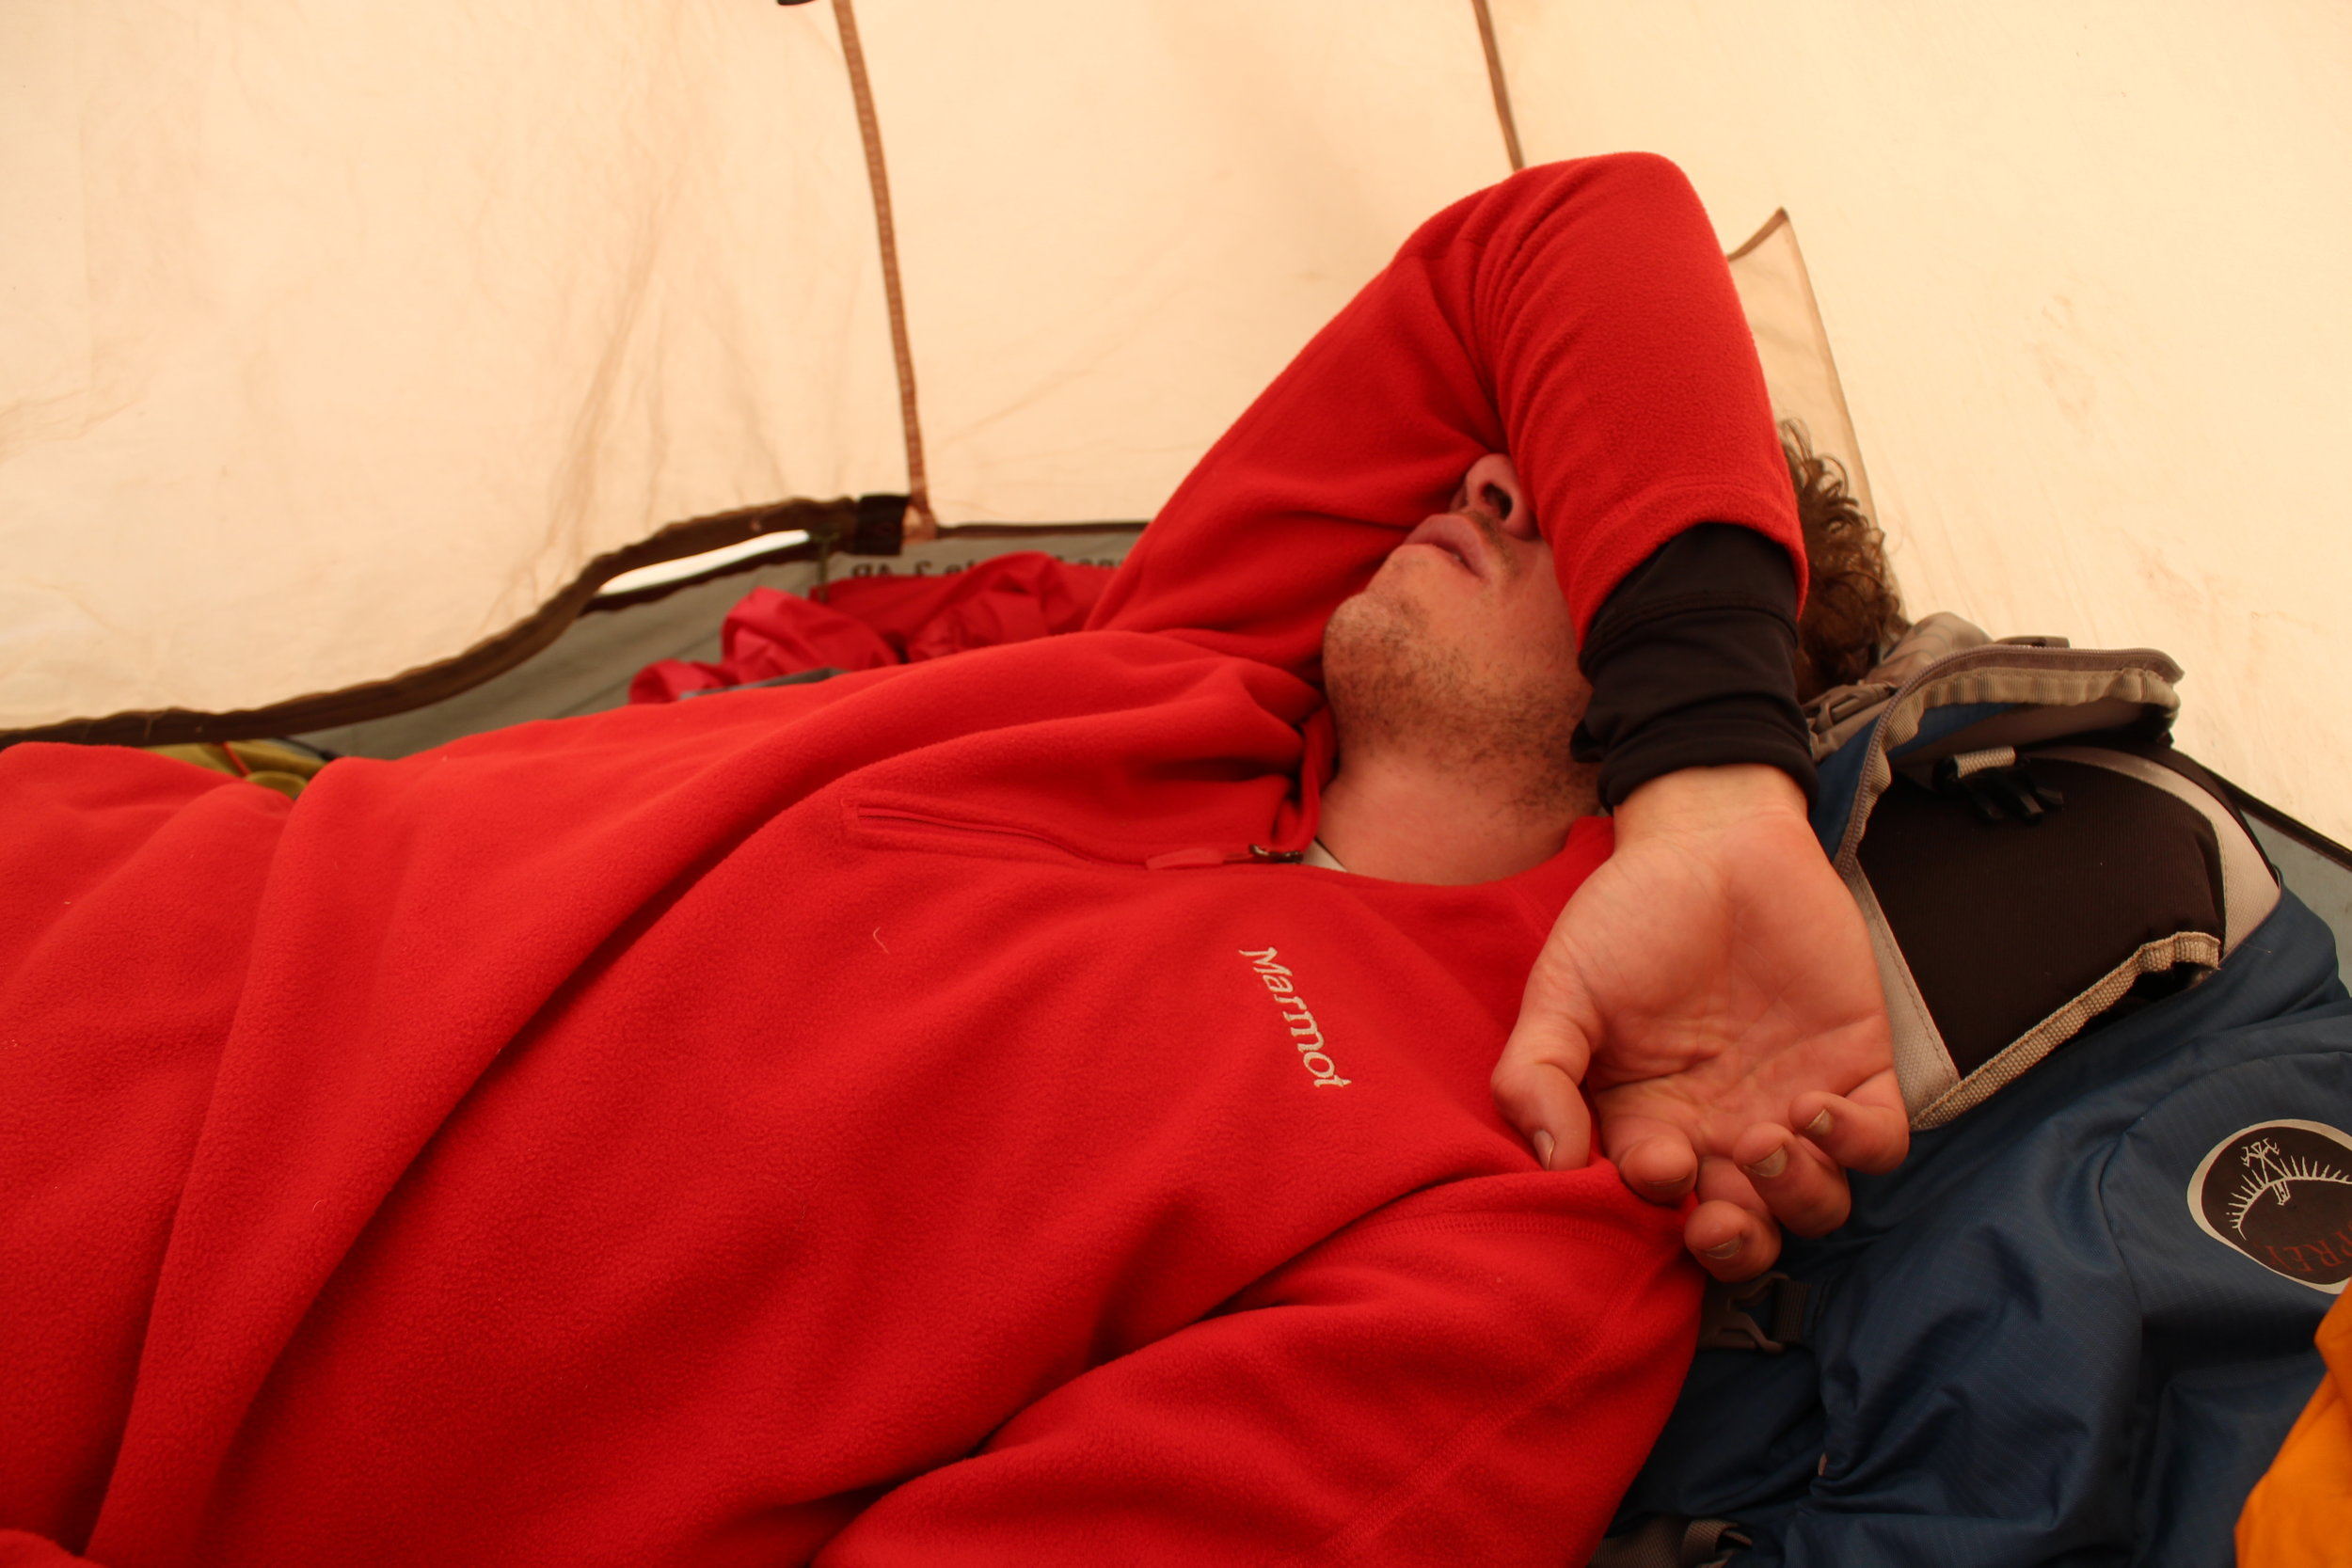 Charlie resting from altitude sickness in his tent